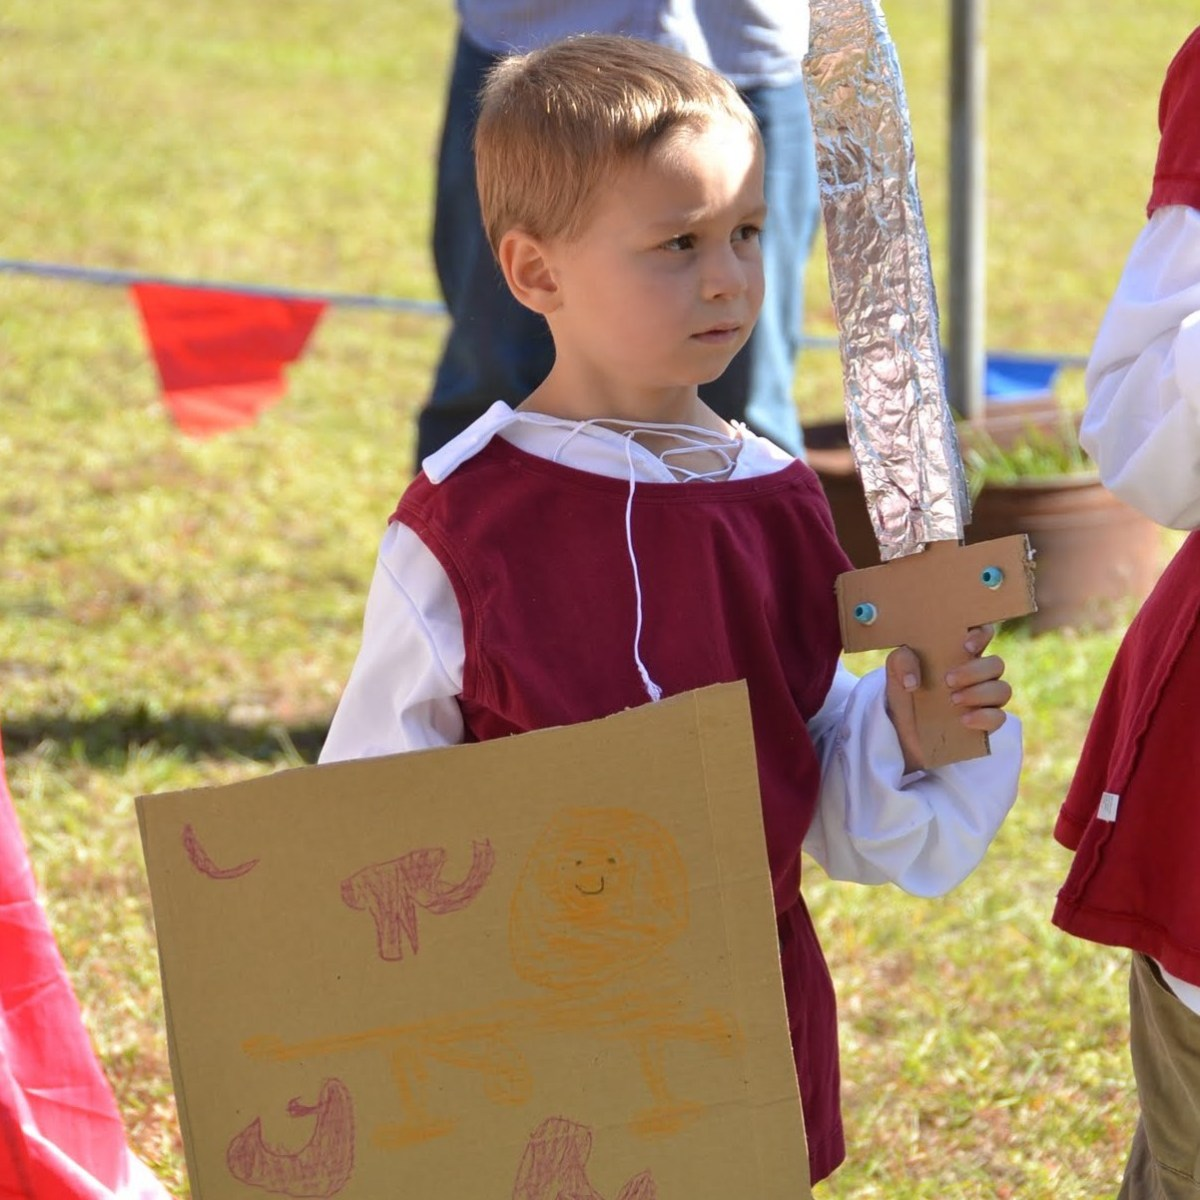 Knighting ceremony and joust from part 4 (or 5): Knights & Ladies Lesson